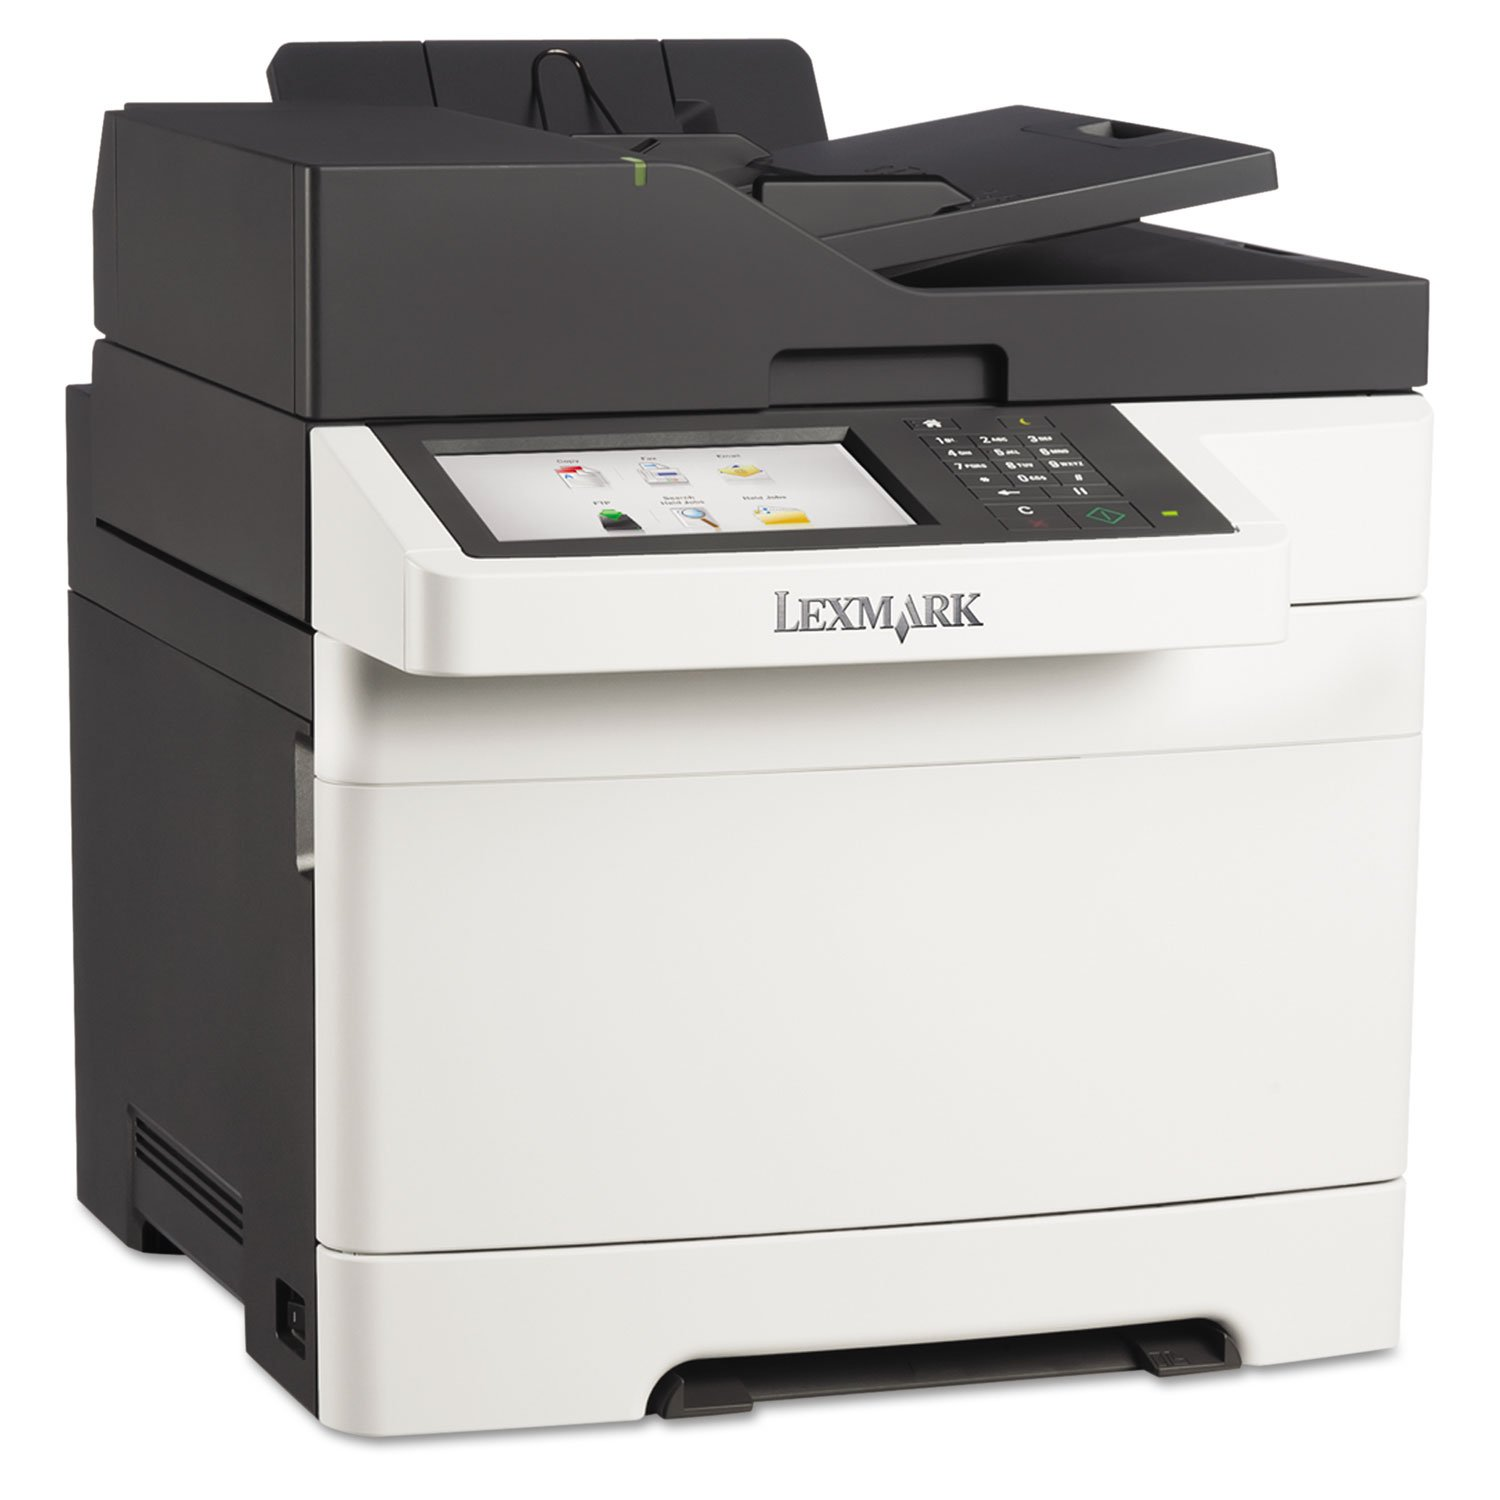 Amazon.com: Lexmark CX510dthe – Color multifunción (Fax ...